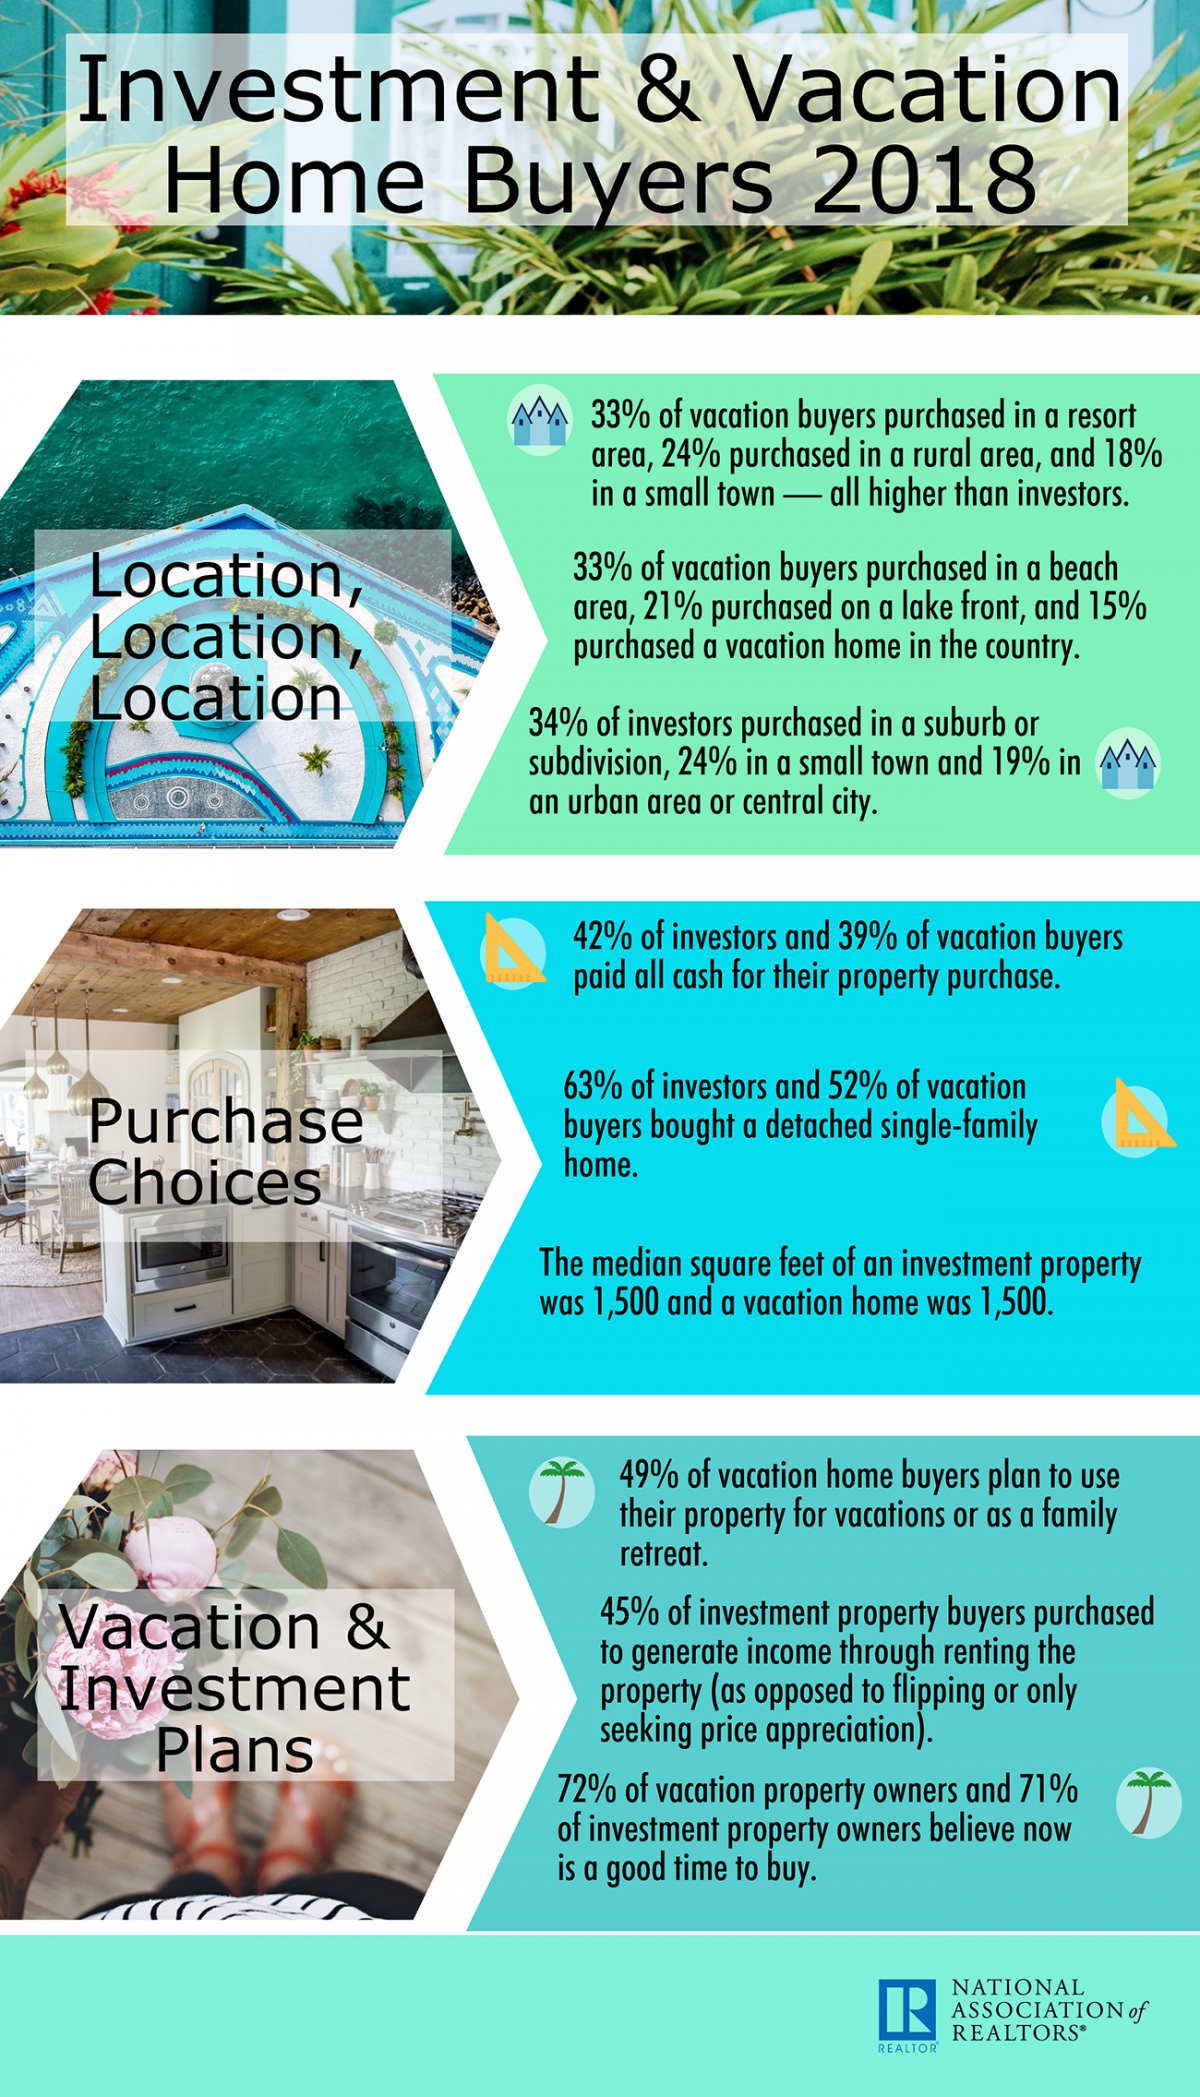 2018 investment and vacation home buyers infographic 07 02 2018 1300w 2272h